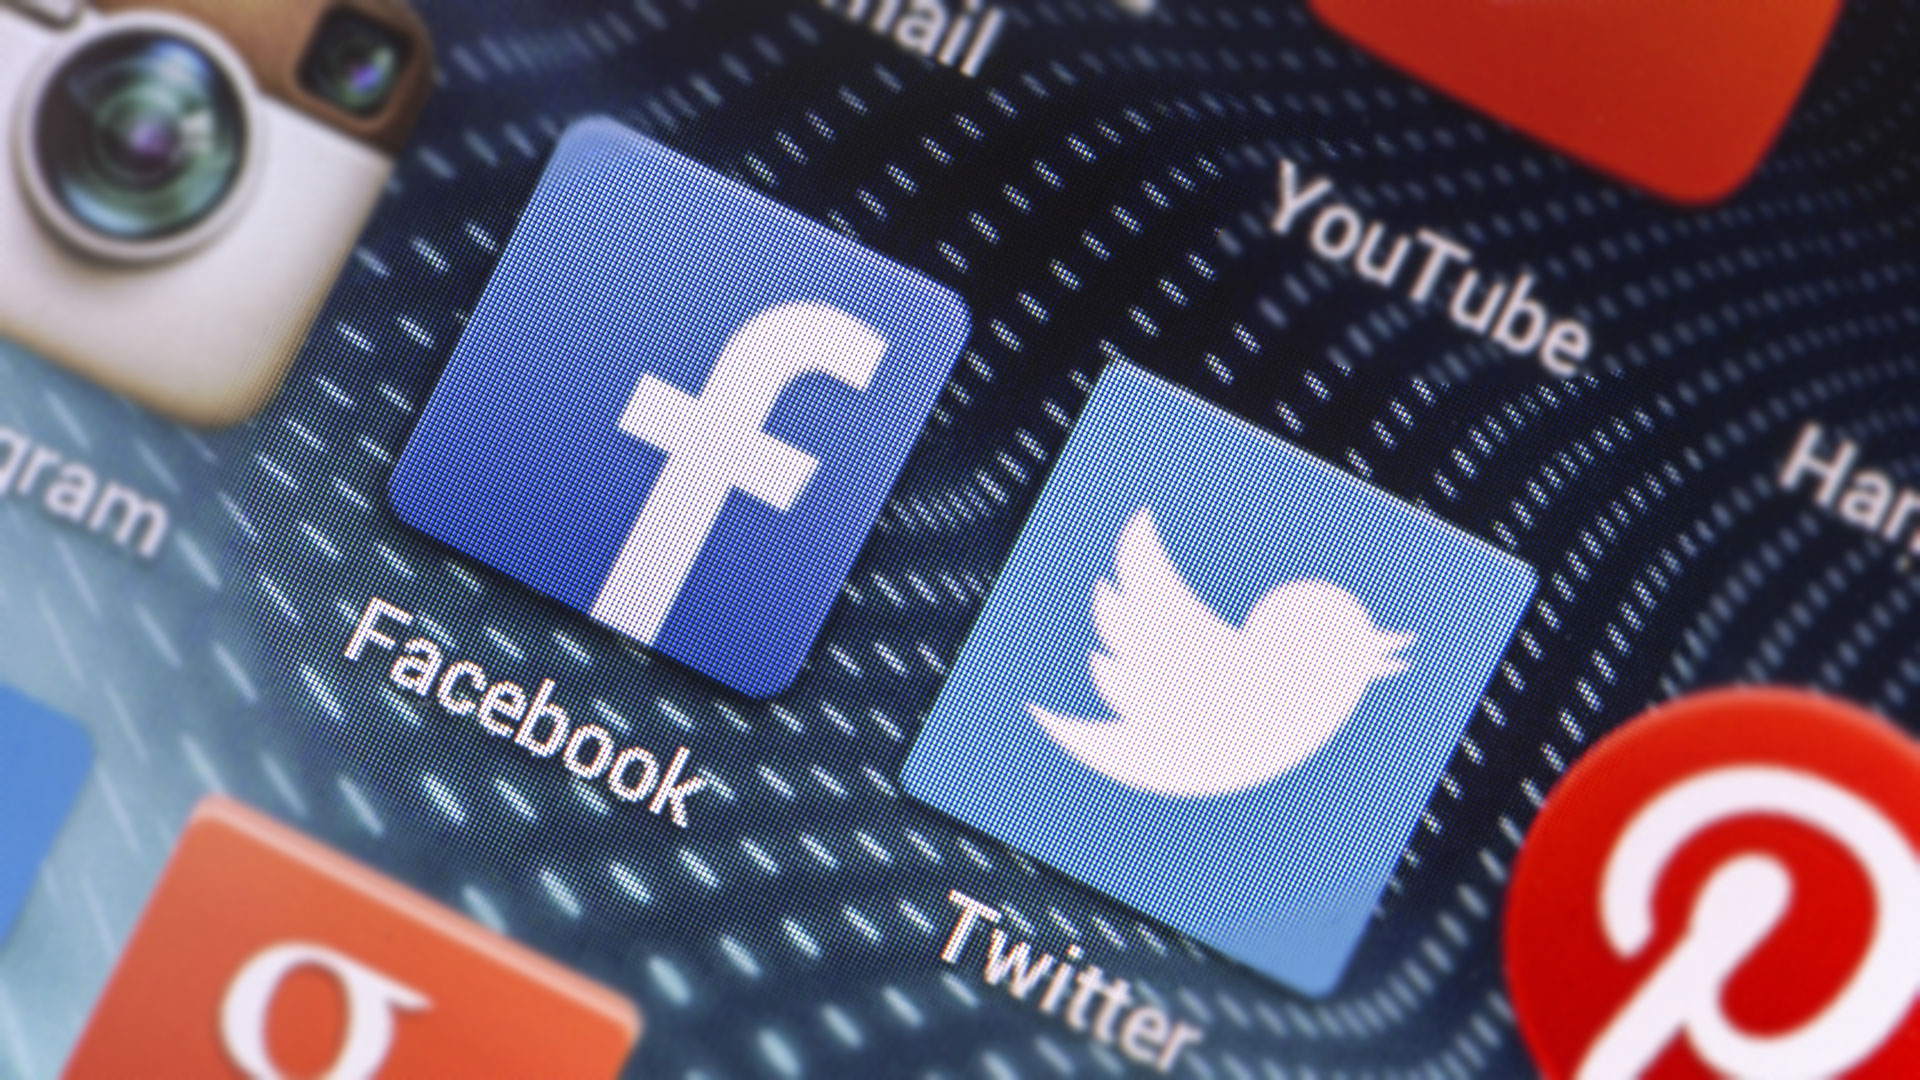 facebook-twitter-mobile-apps-ss-1920